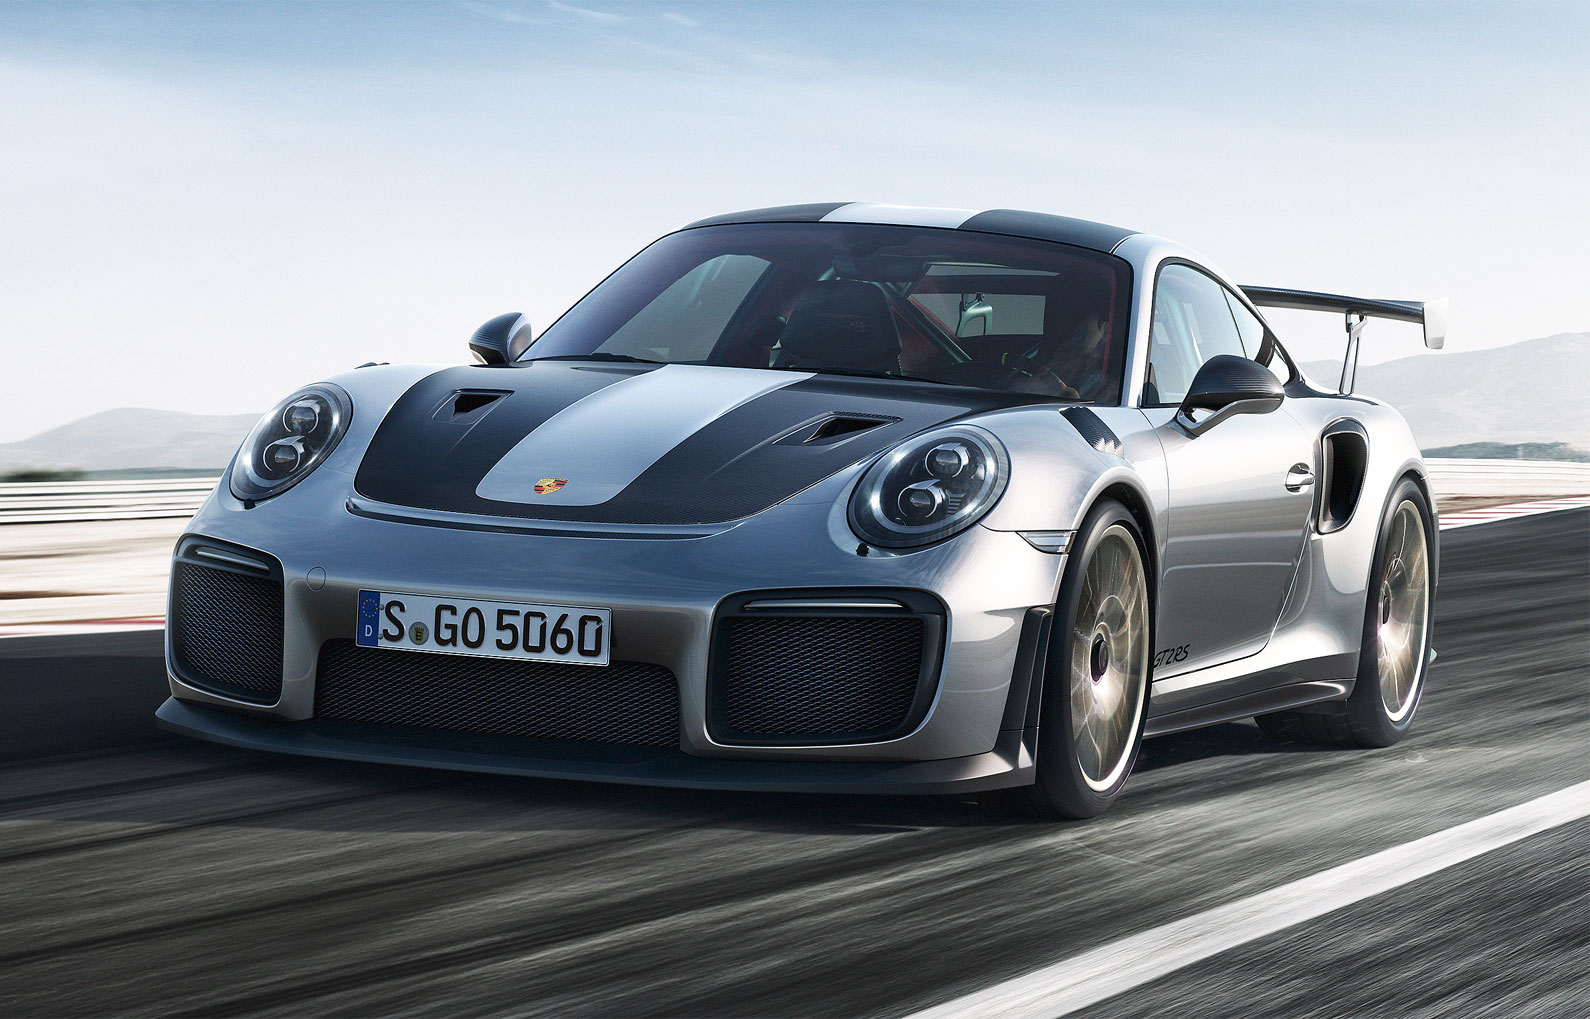 Inside the Porsche 911 GT2 RS, the Most Powerful 911 To Date 4